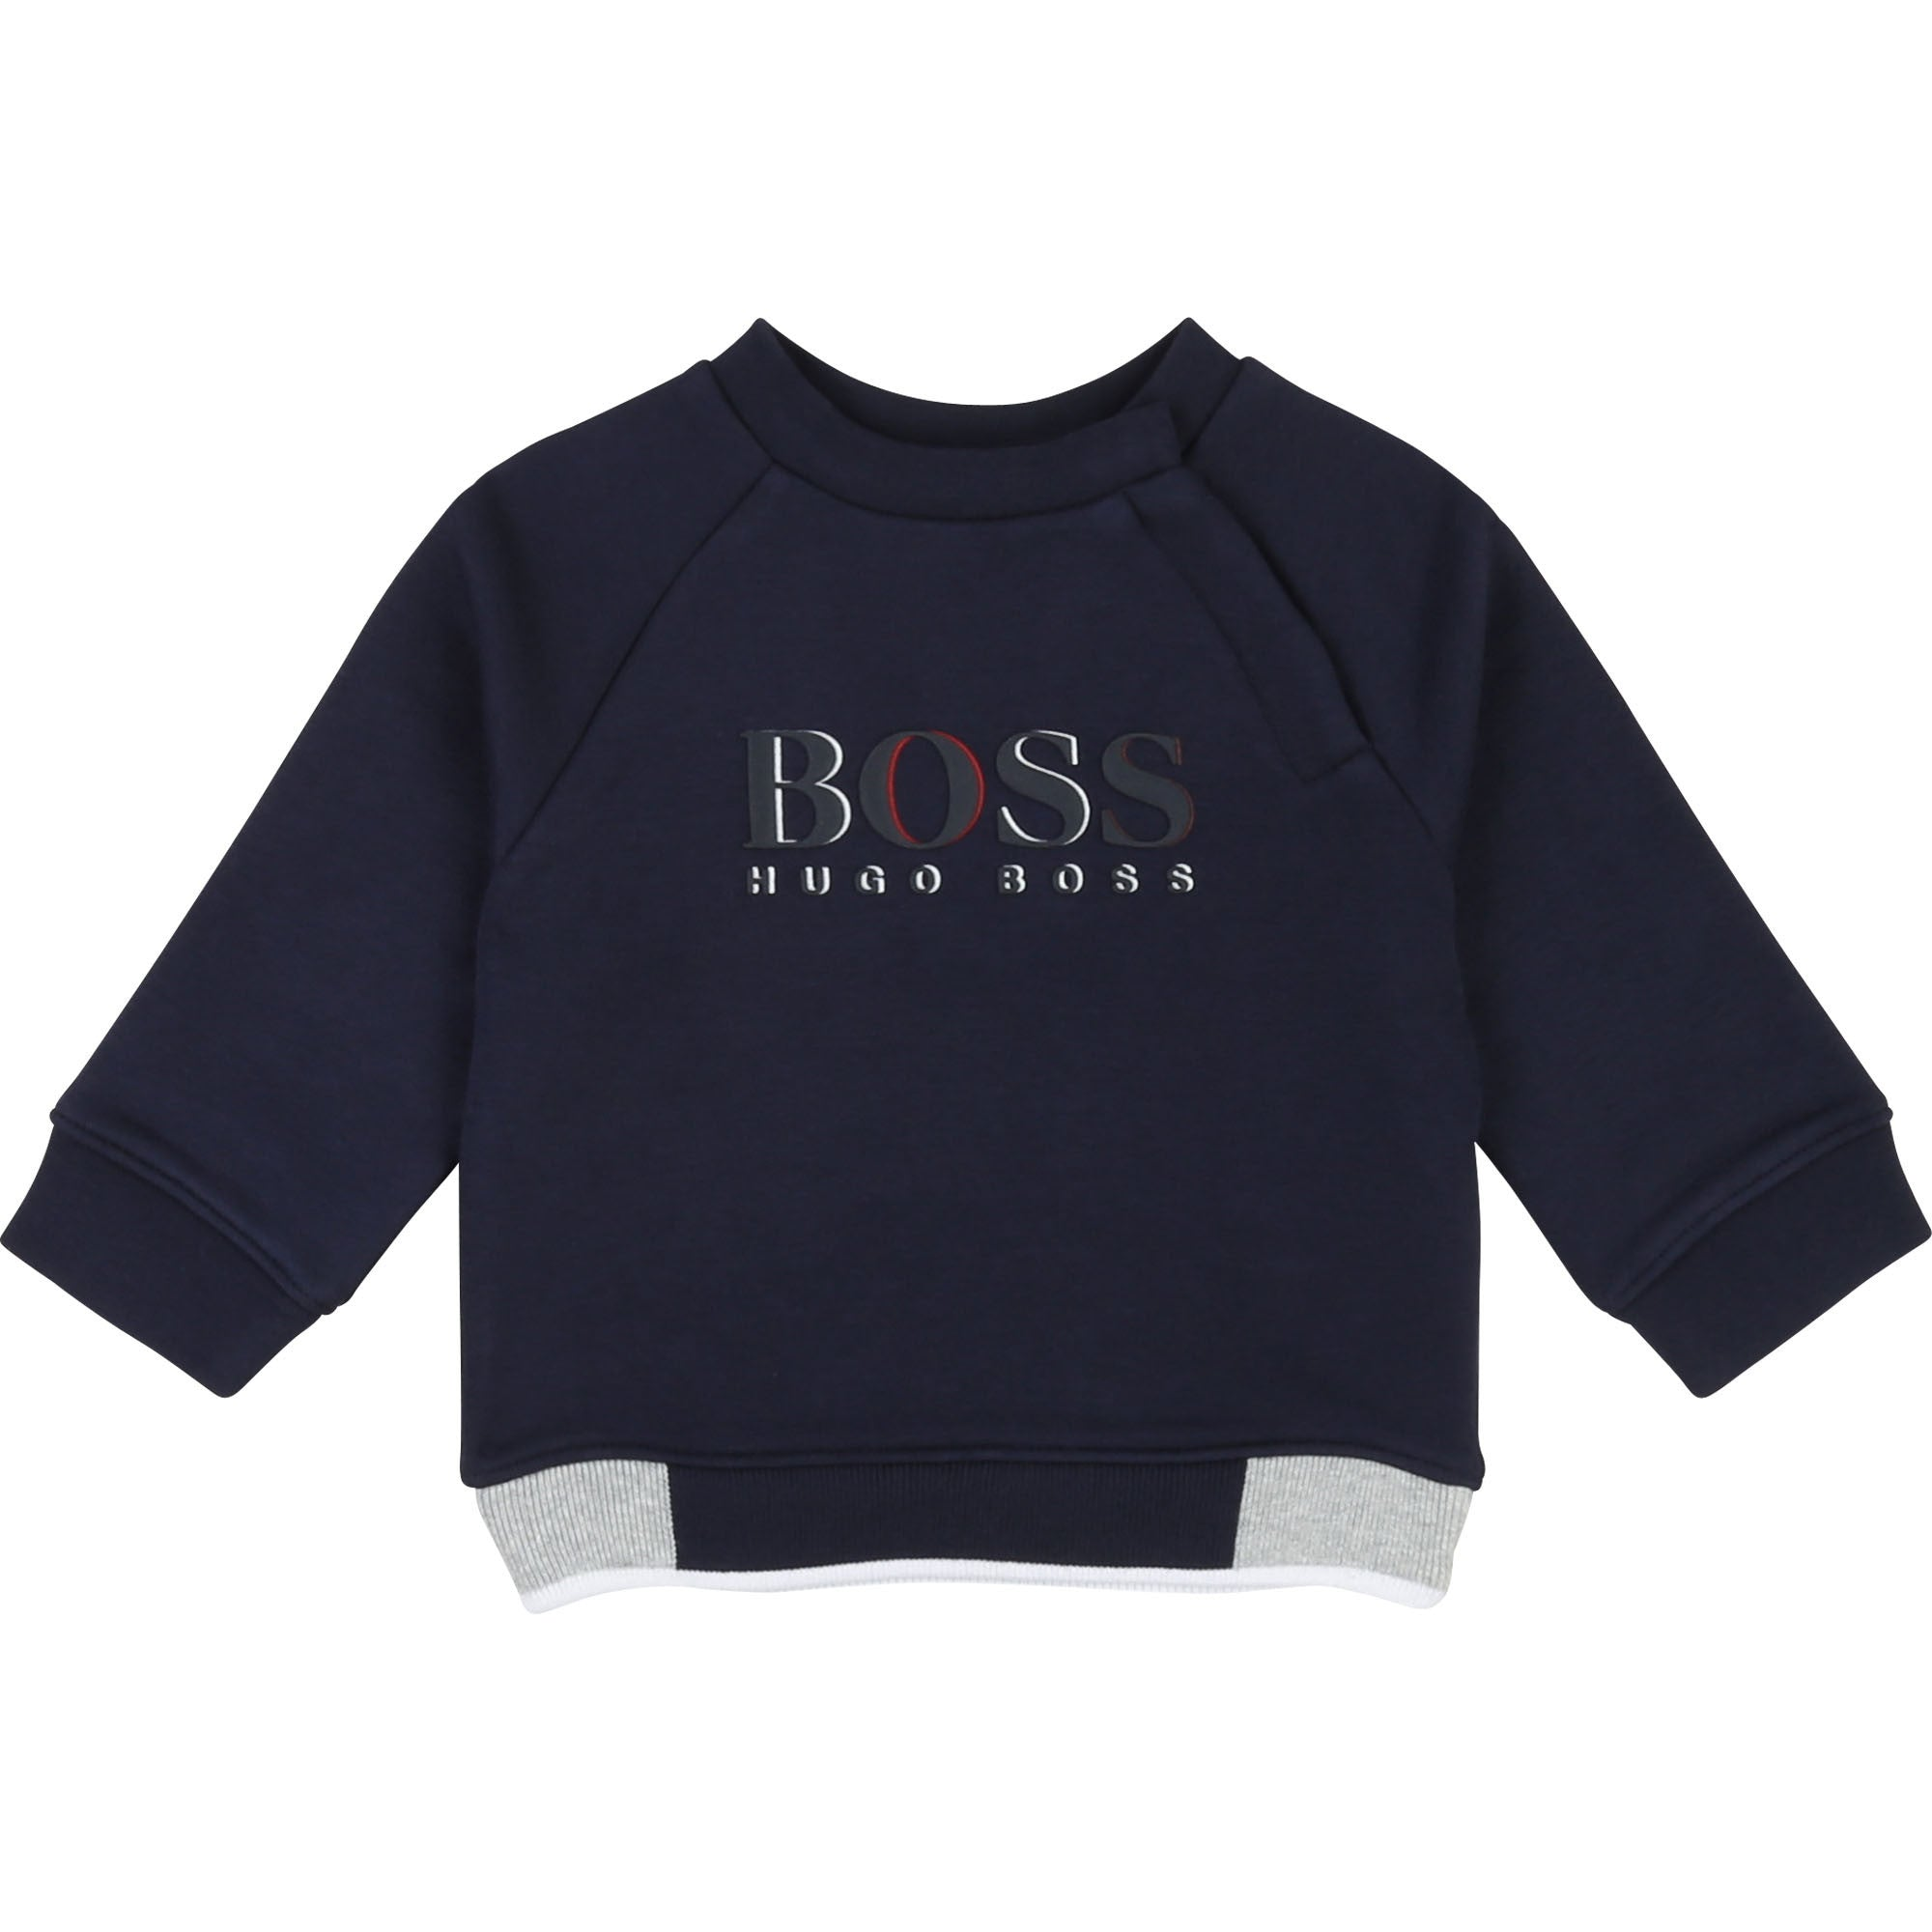 Boys Navy Blue Sweatshirt